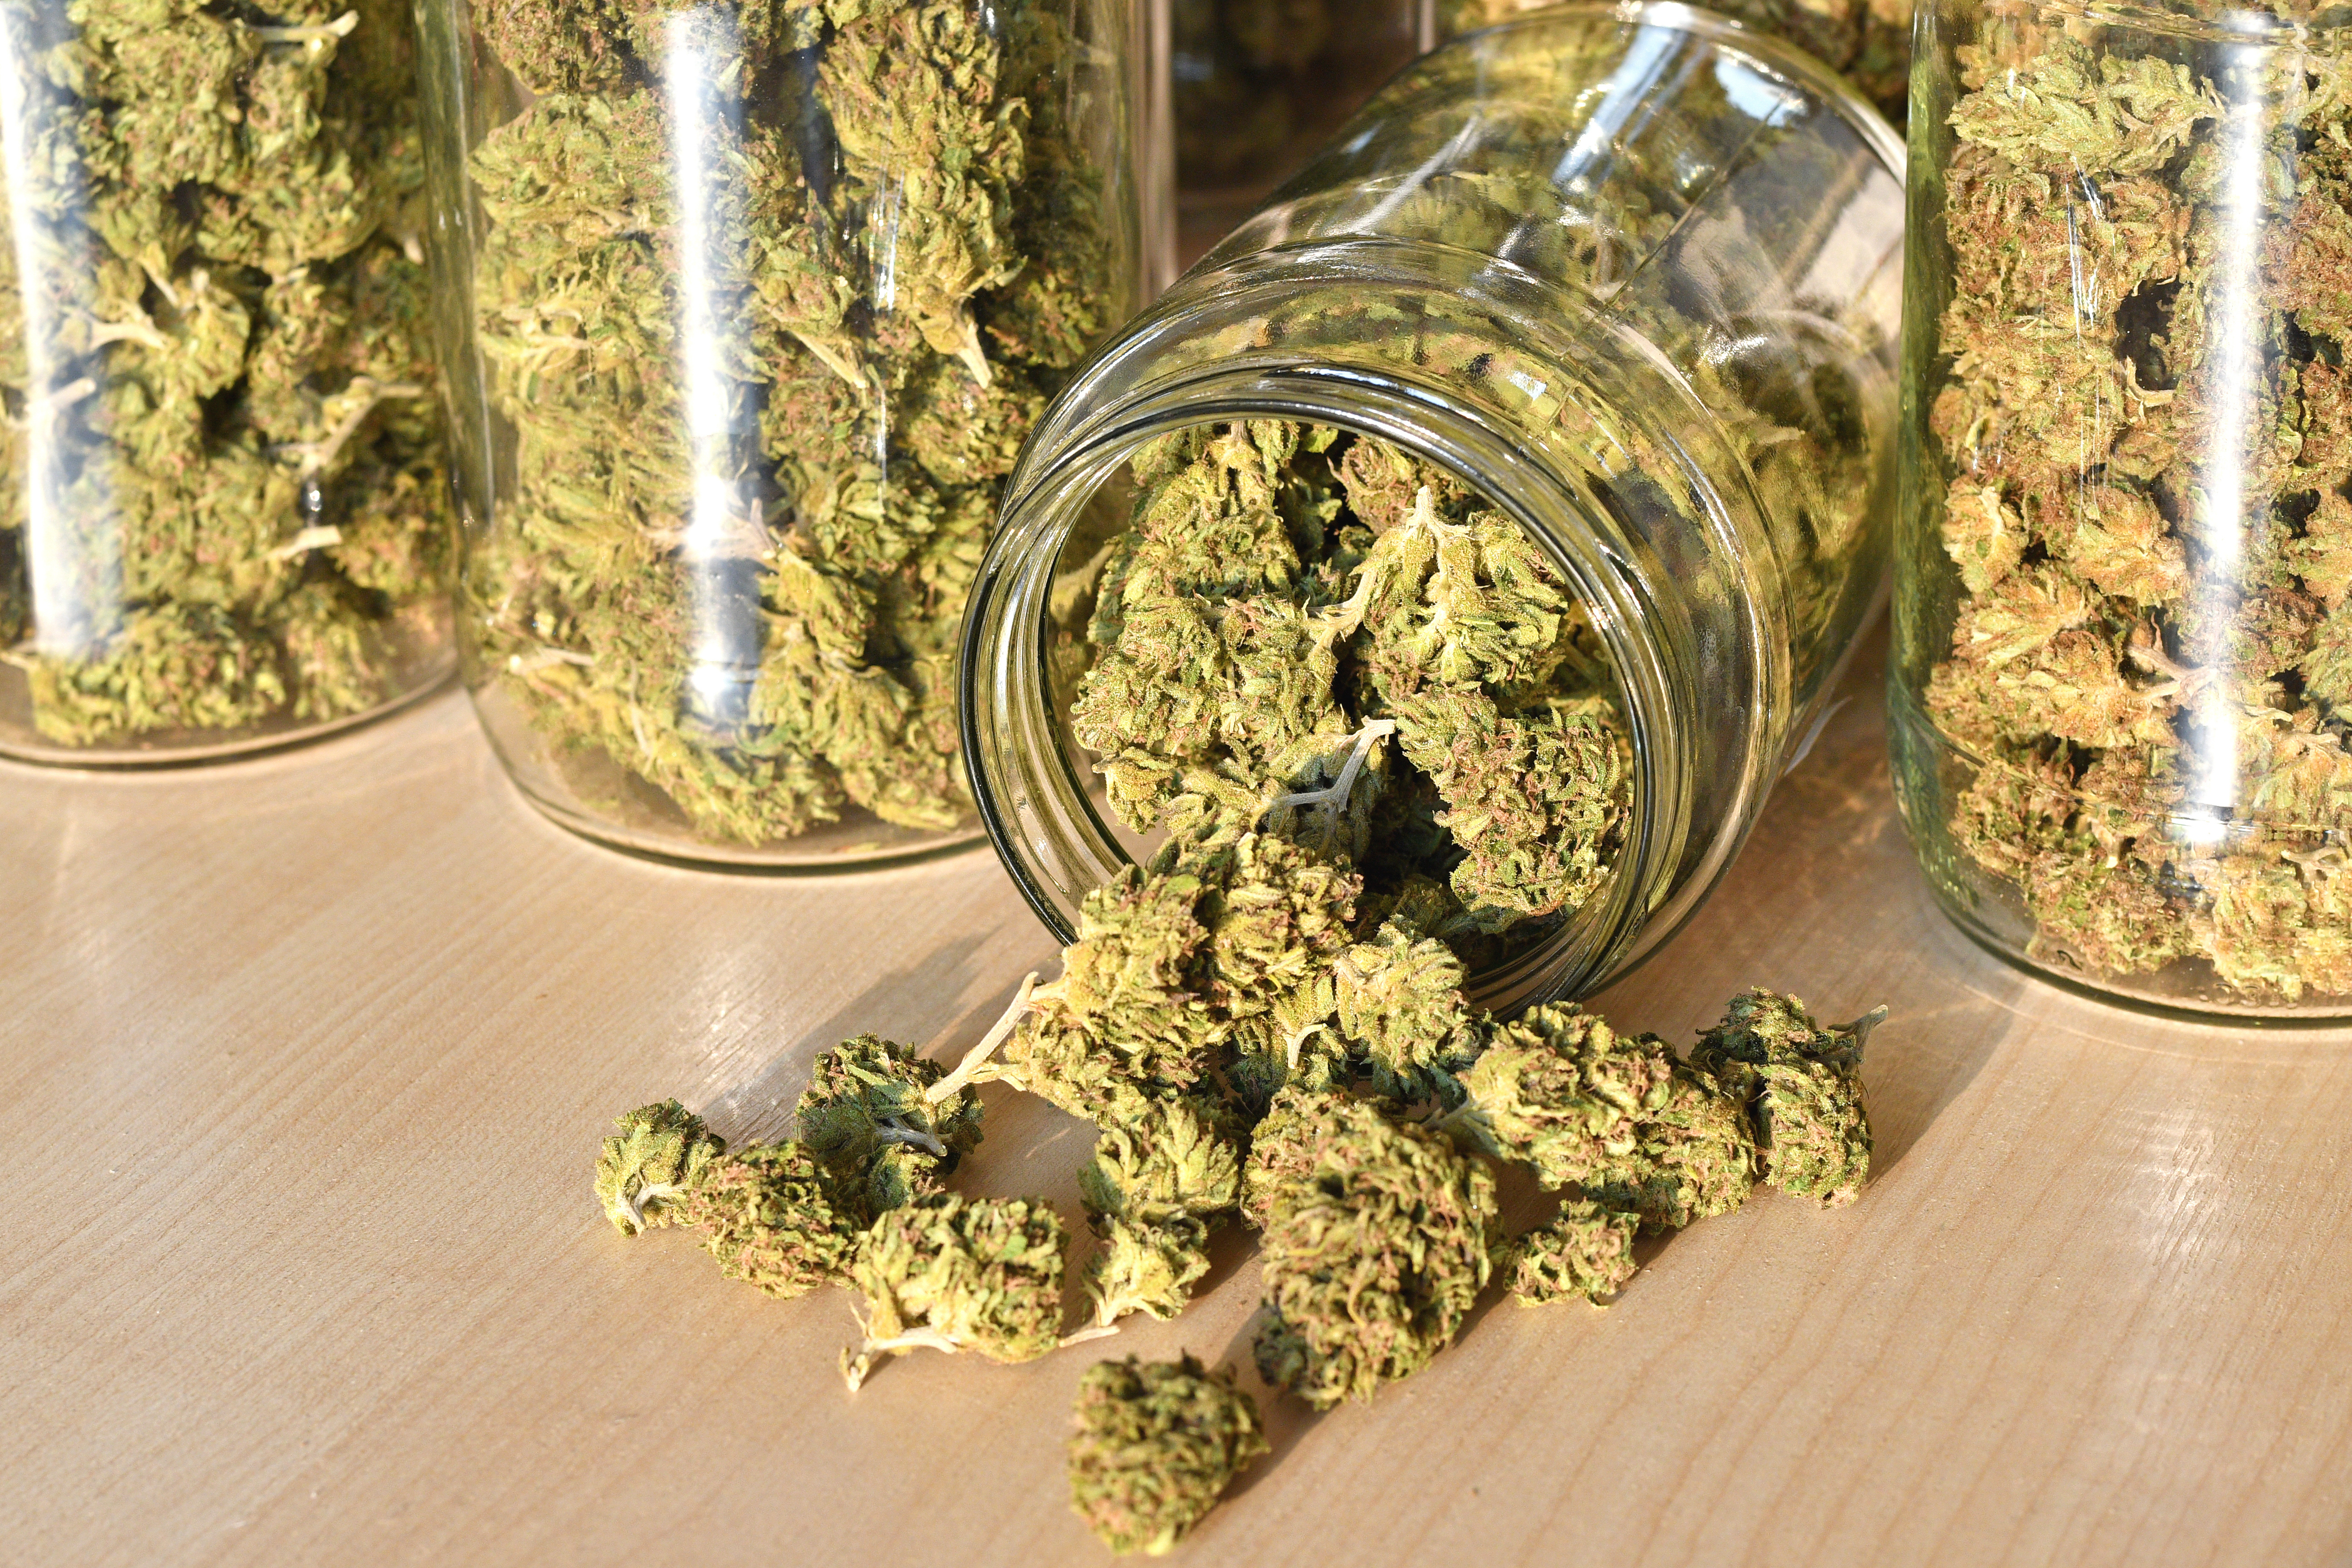 Cannabis Stored in Glass Jars